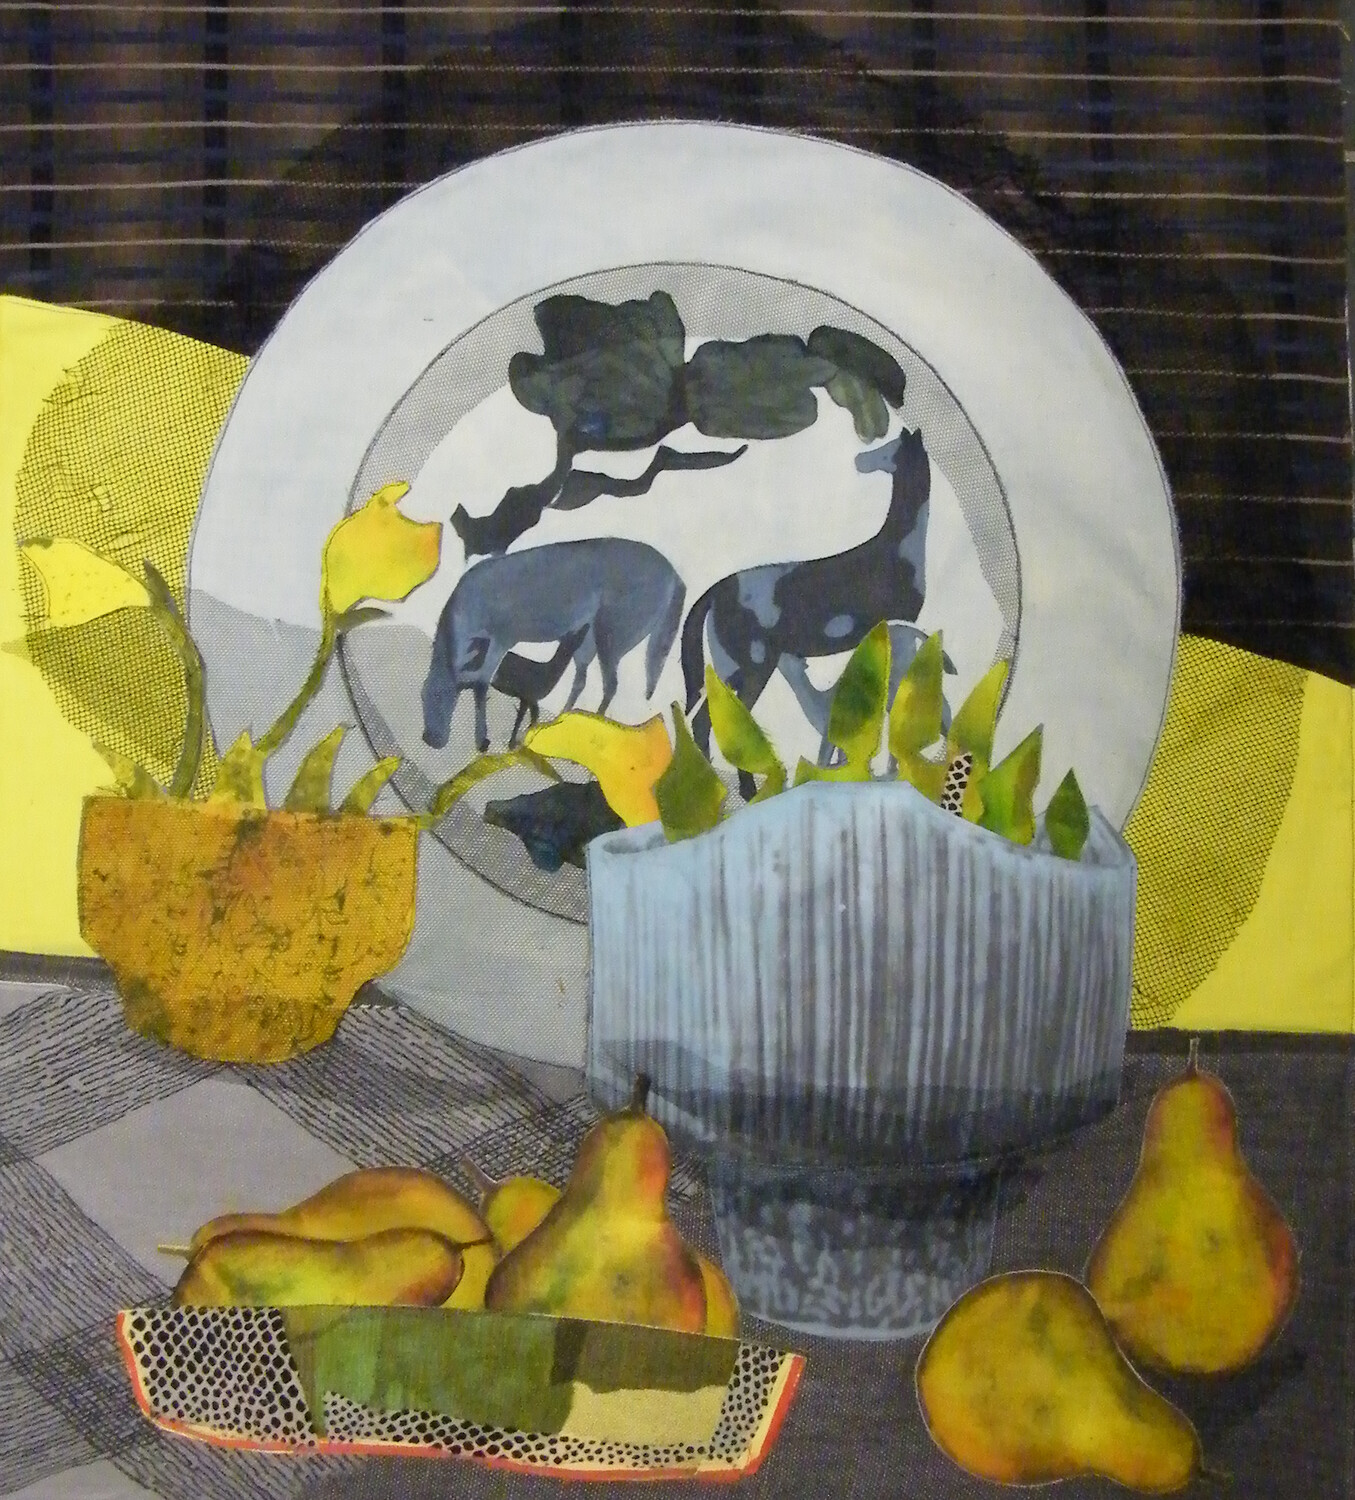 Still Life with Chinese Assiette and Pears